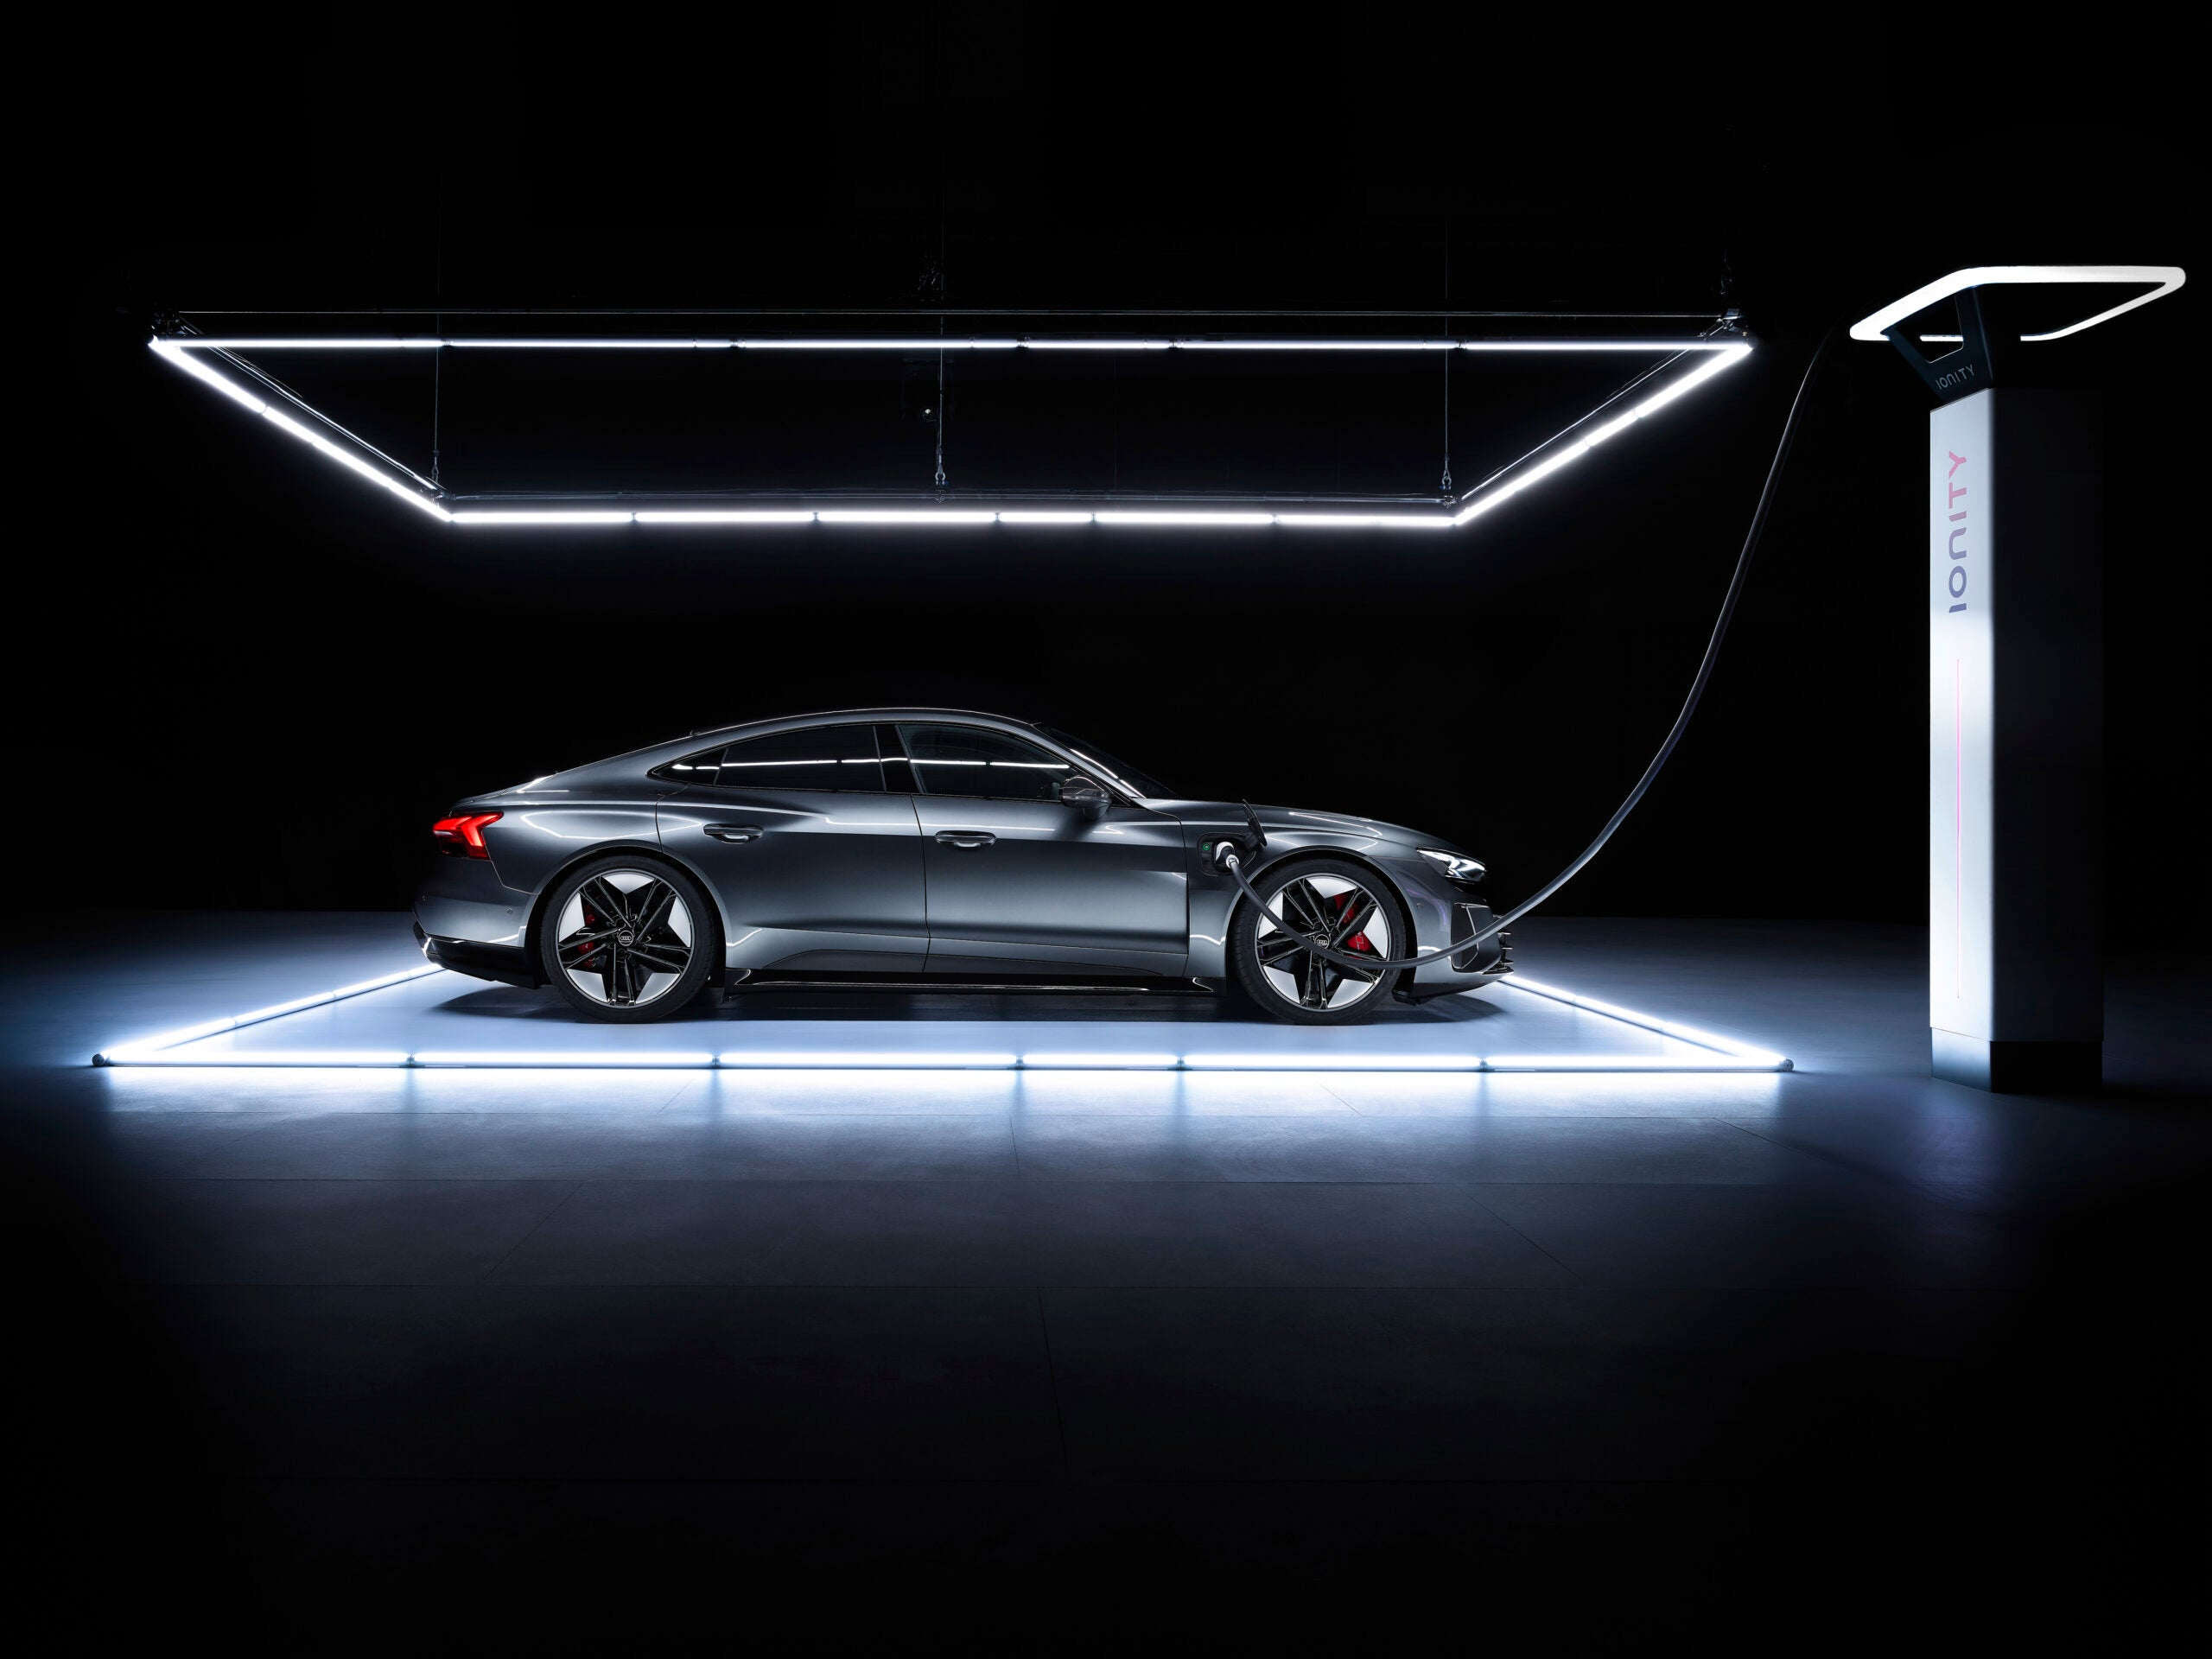 Audi e-tron electric car on the charger